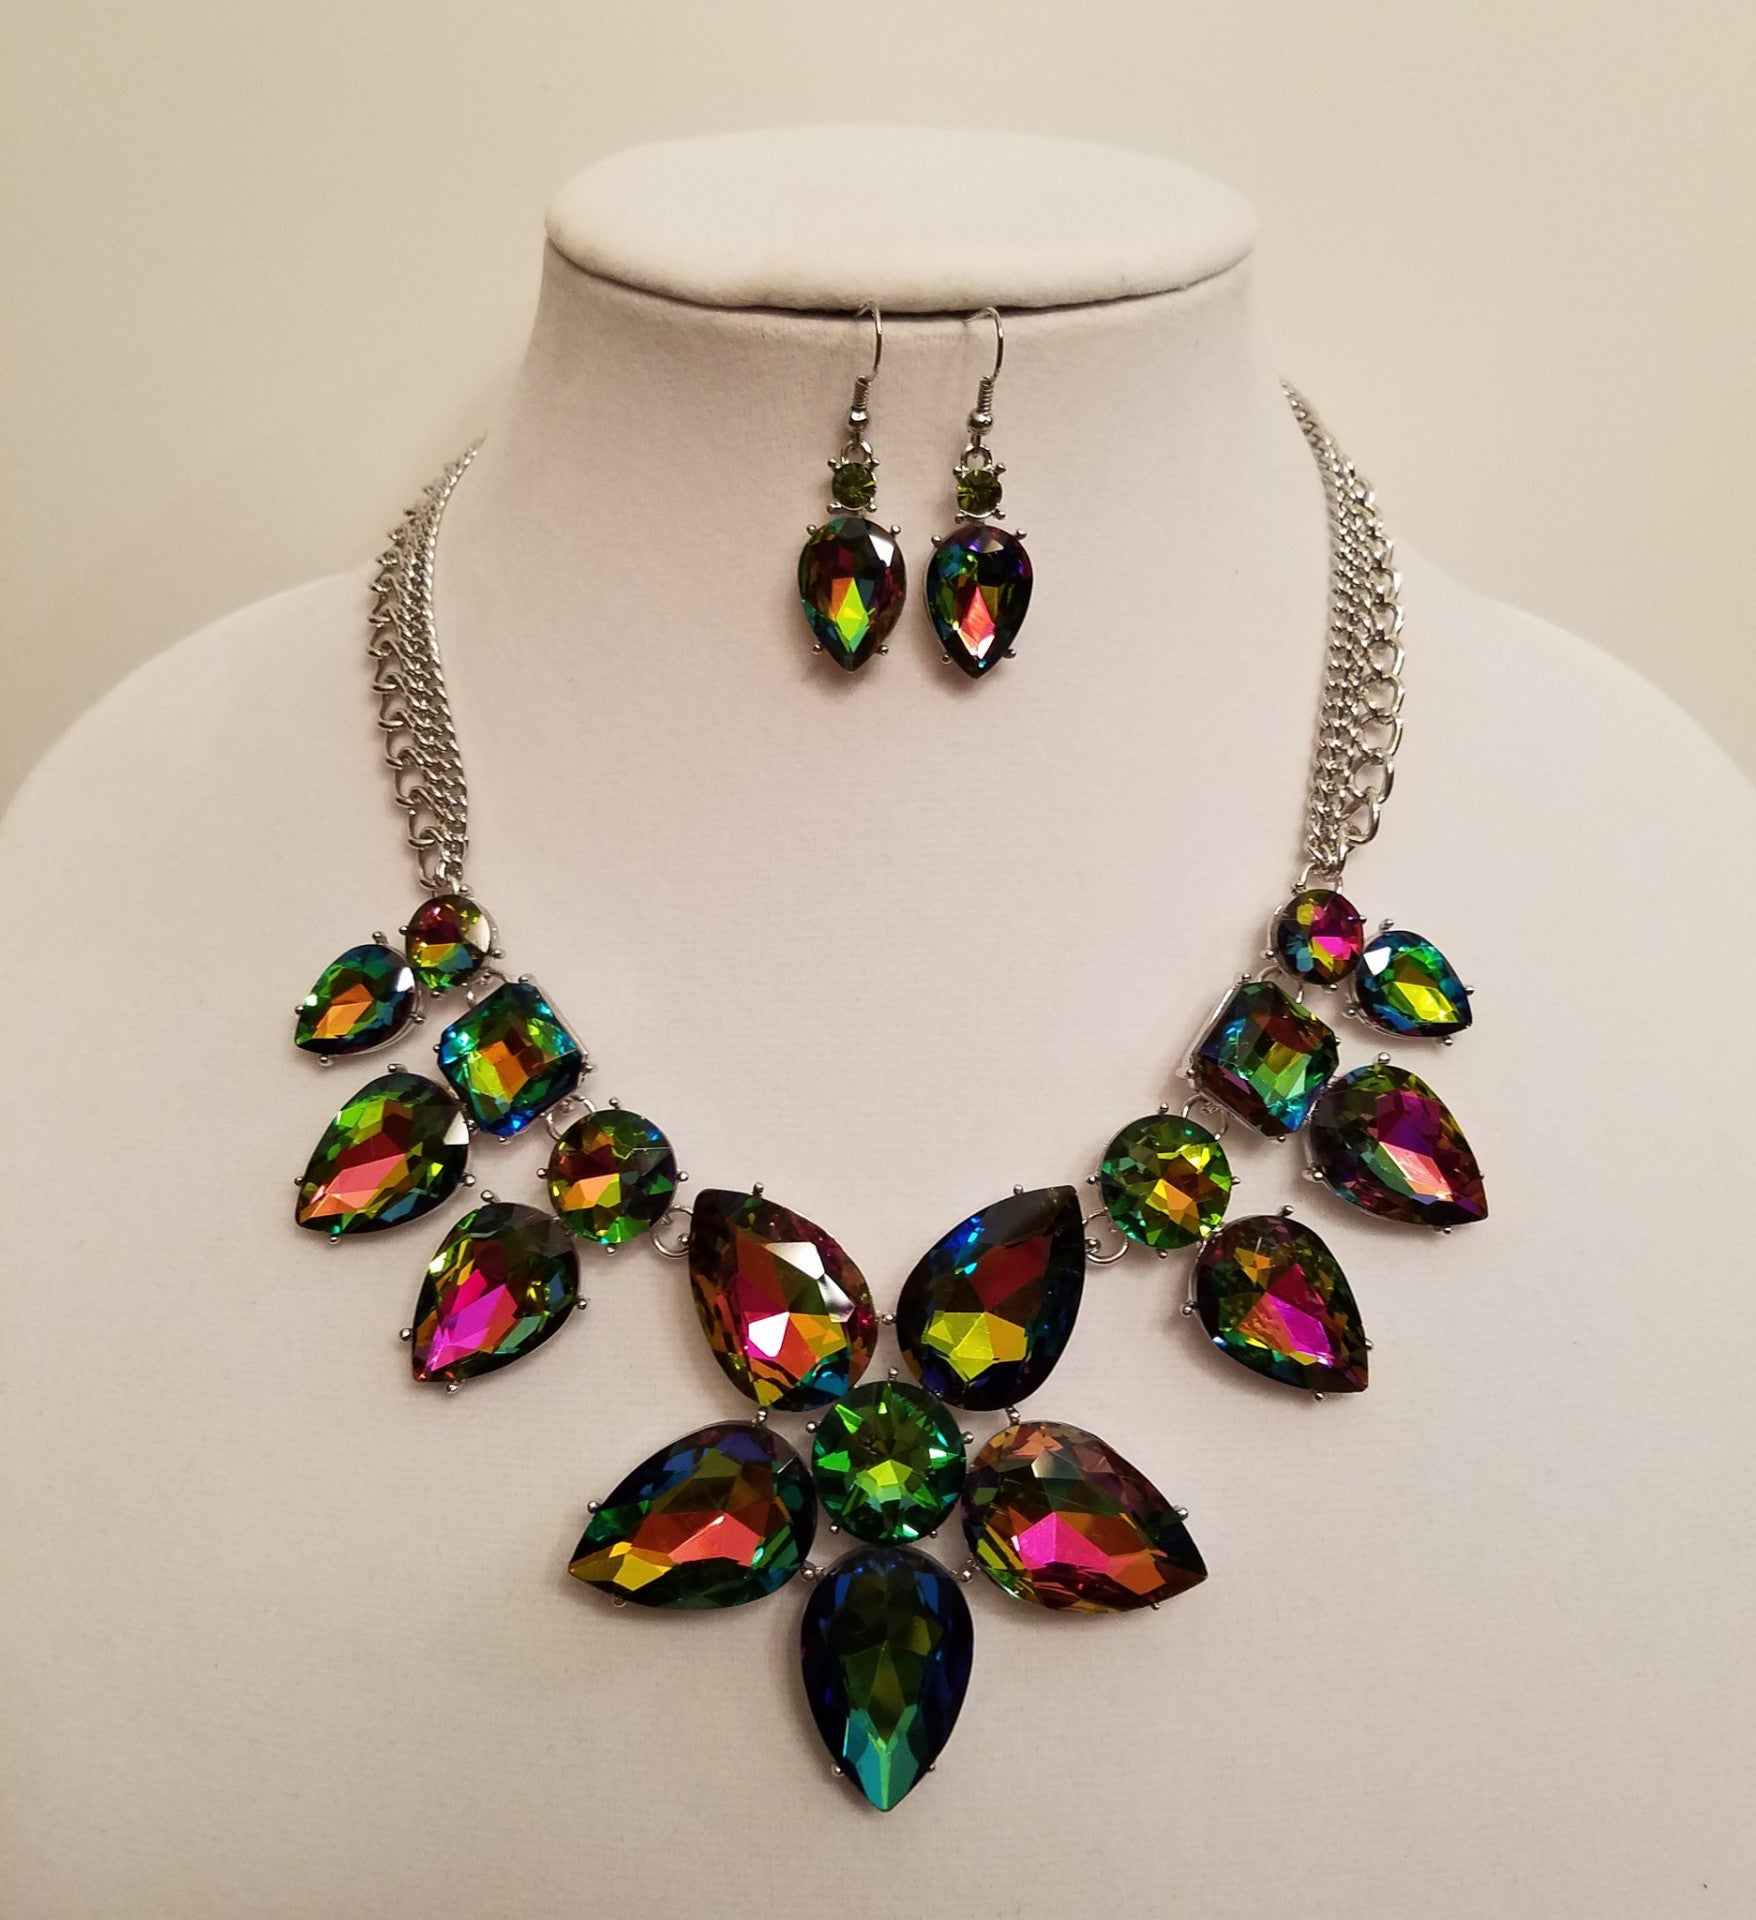 Vitrail Green Floral Crystal Statement Necklace Set - Bedazzled By Jeanelle